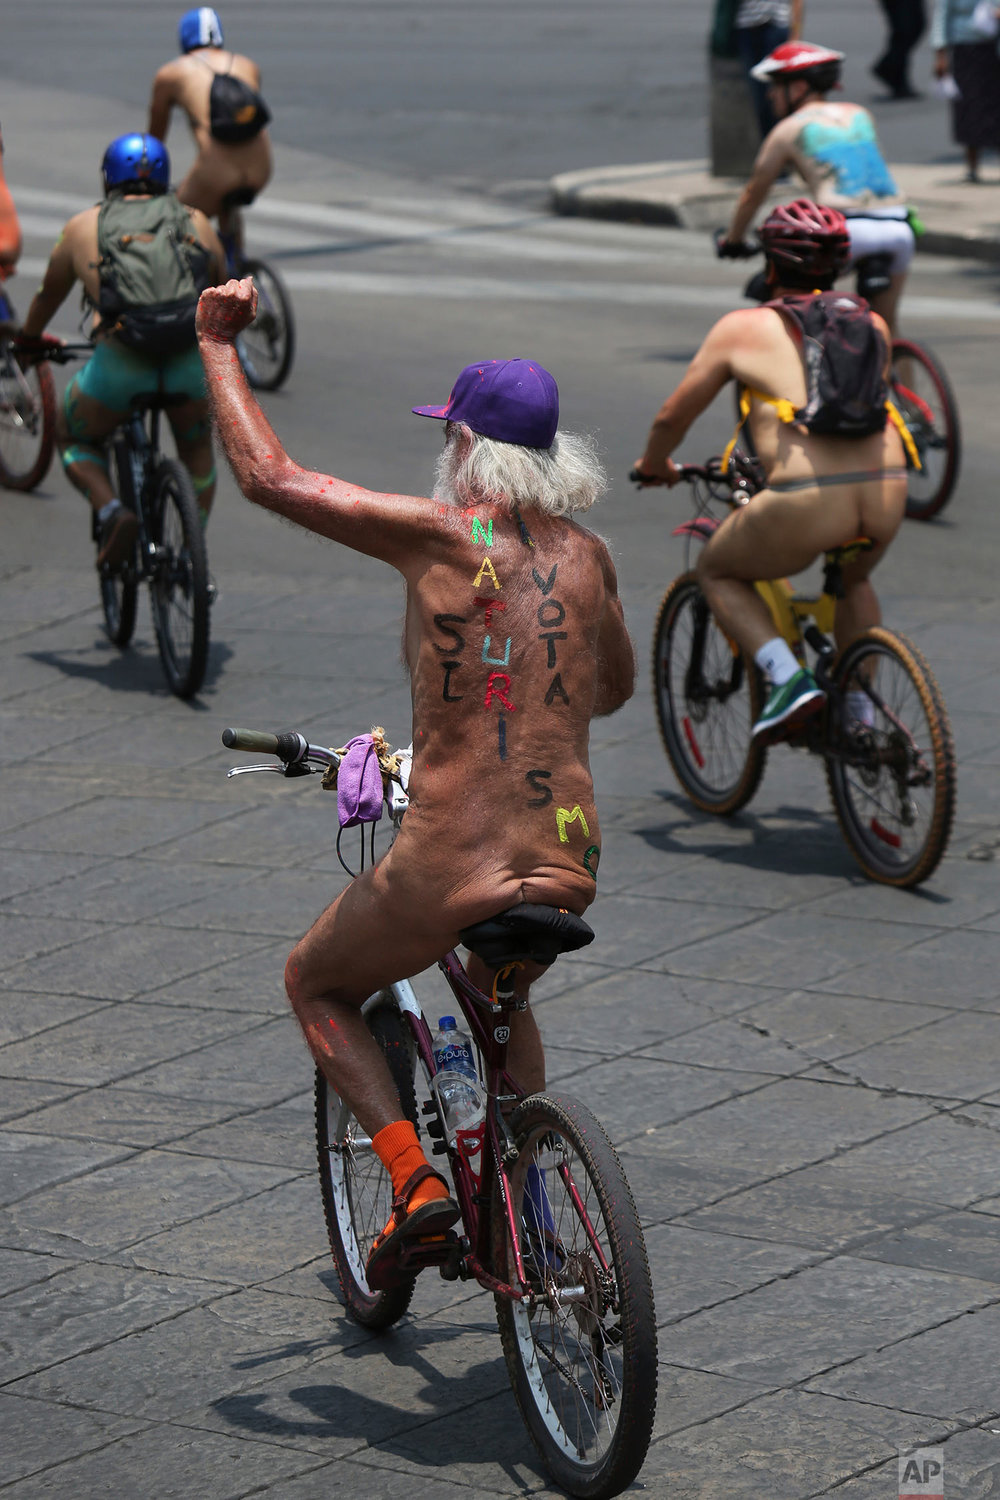 Nude cyclists rides through Mexico City, June 9, 2018, to promote the use of bicycles and highlight damage caused by car dependency. (AP Photo/Marco Ugarte)